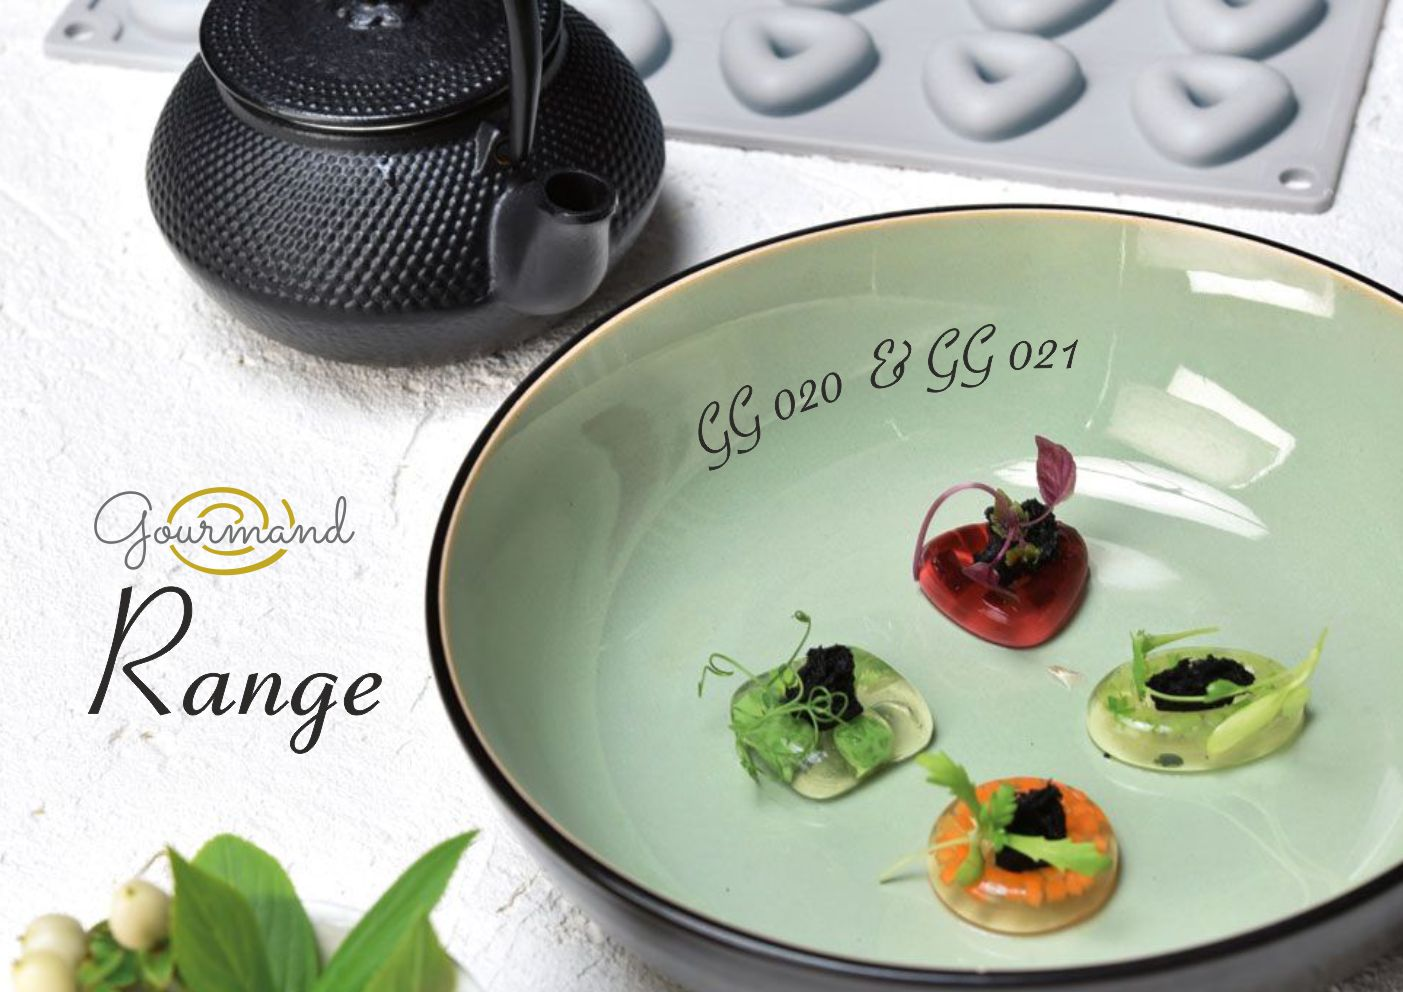 gourmand range gg020 & gg021, food mould, silicon mould